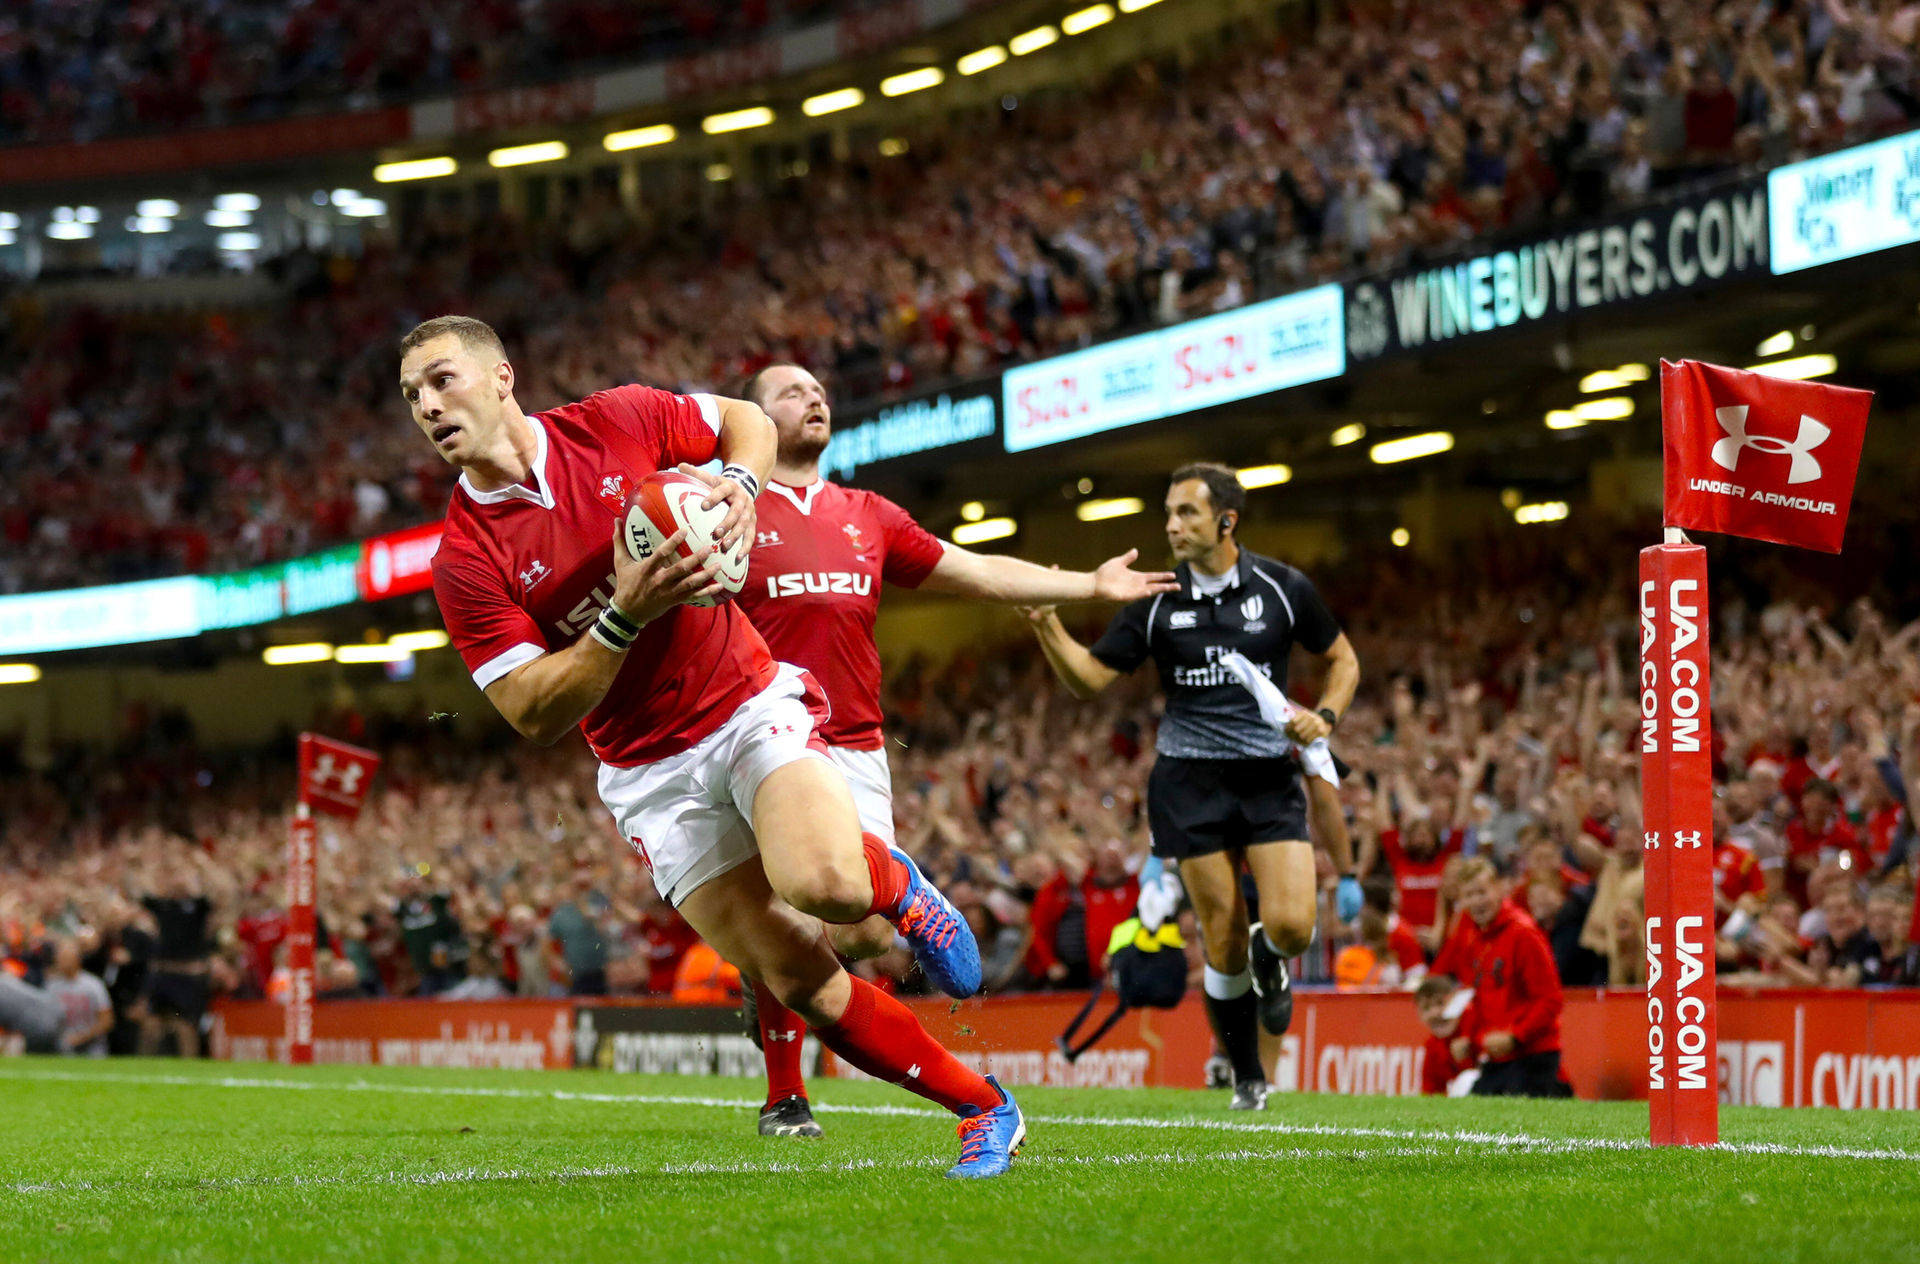 Rugby: Wales beat England, overtake All Blacks as top team in international rugby